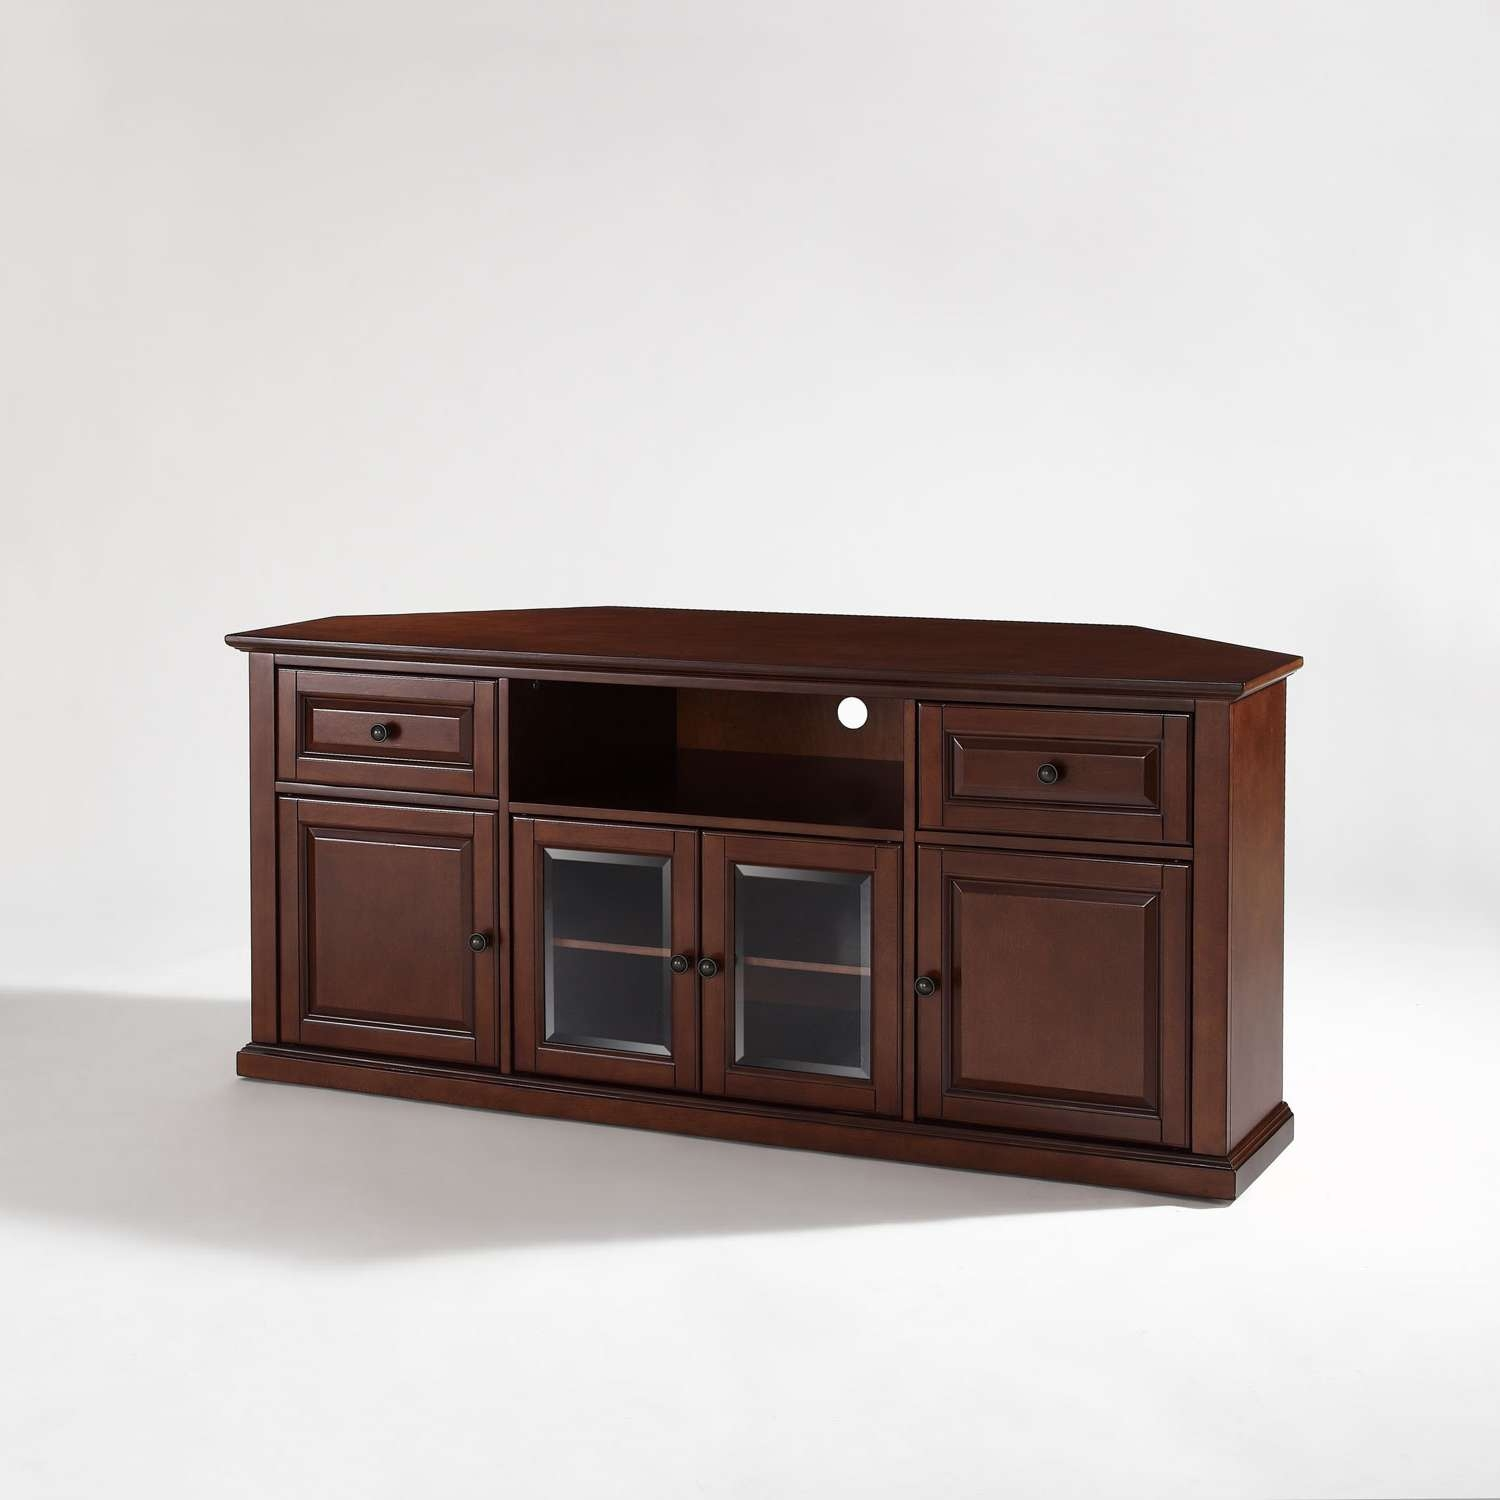 60 Inch Corner Tv Stand In Vintage Mahogany Crosley Furniture Regarding Corner Tv Cabinets (Gallery 8 of 20)